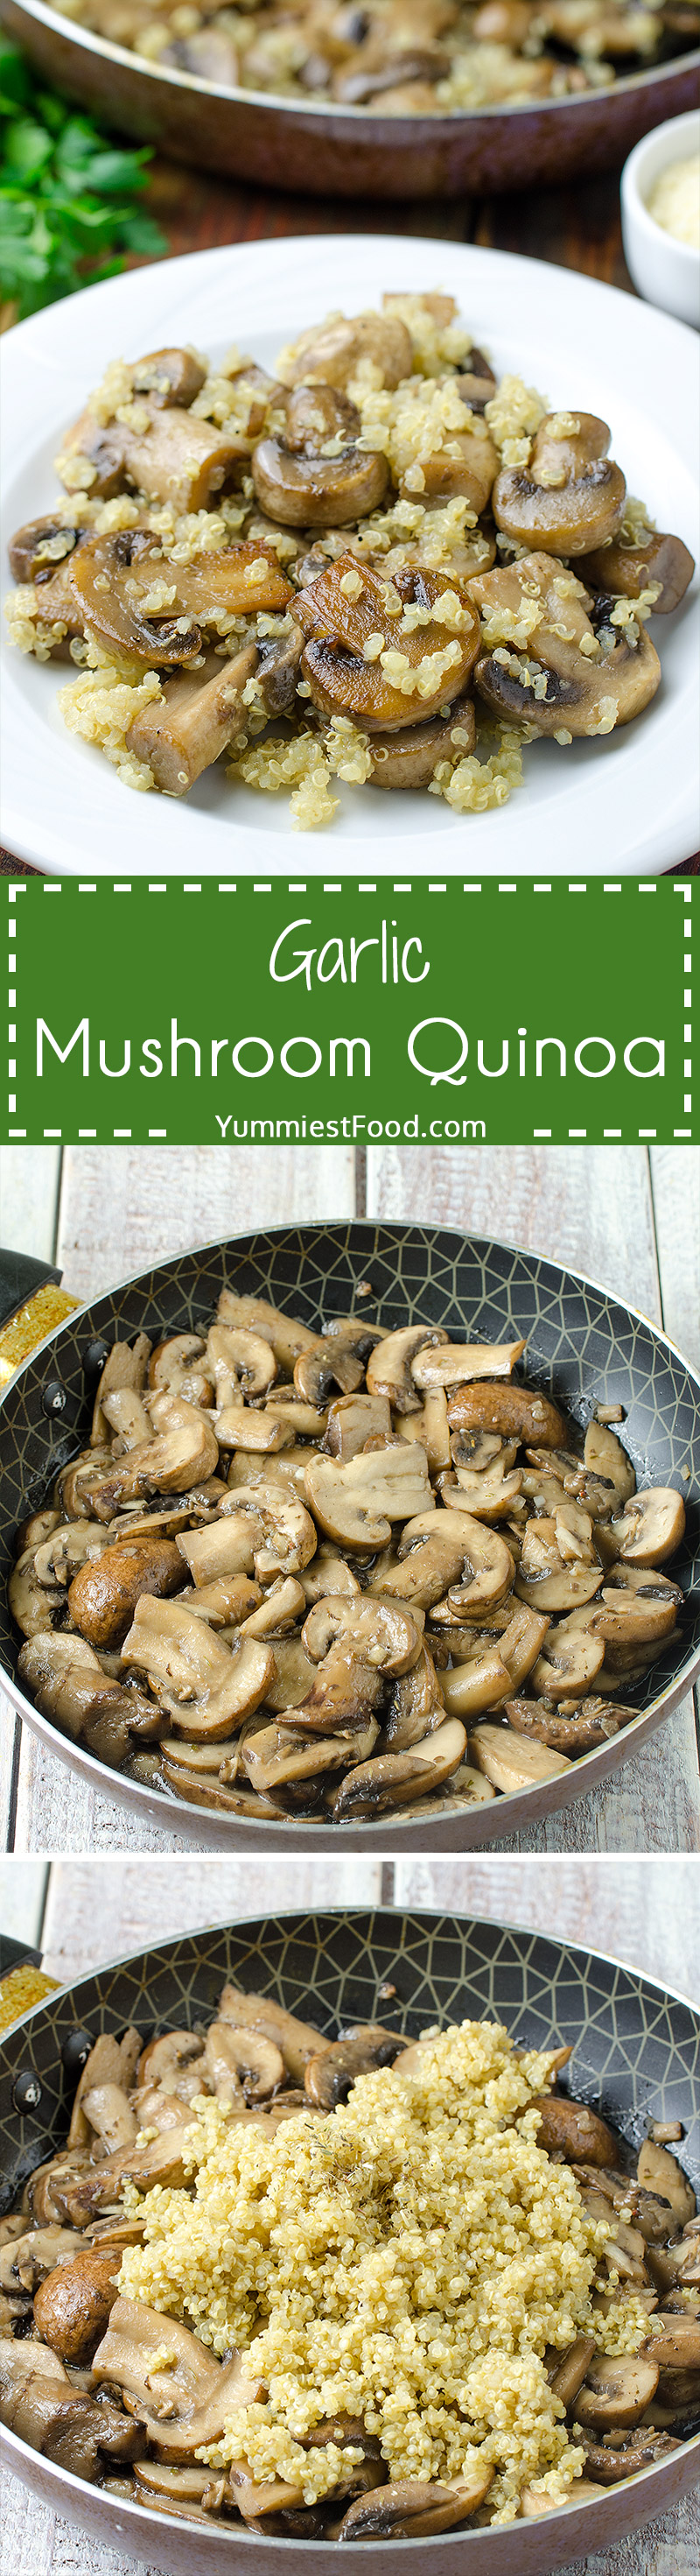 GARLIC MUSHROOM QUINOA - a simple, healthy and gluten free side dish ready in 15 minutes